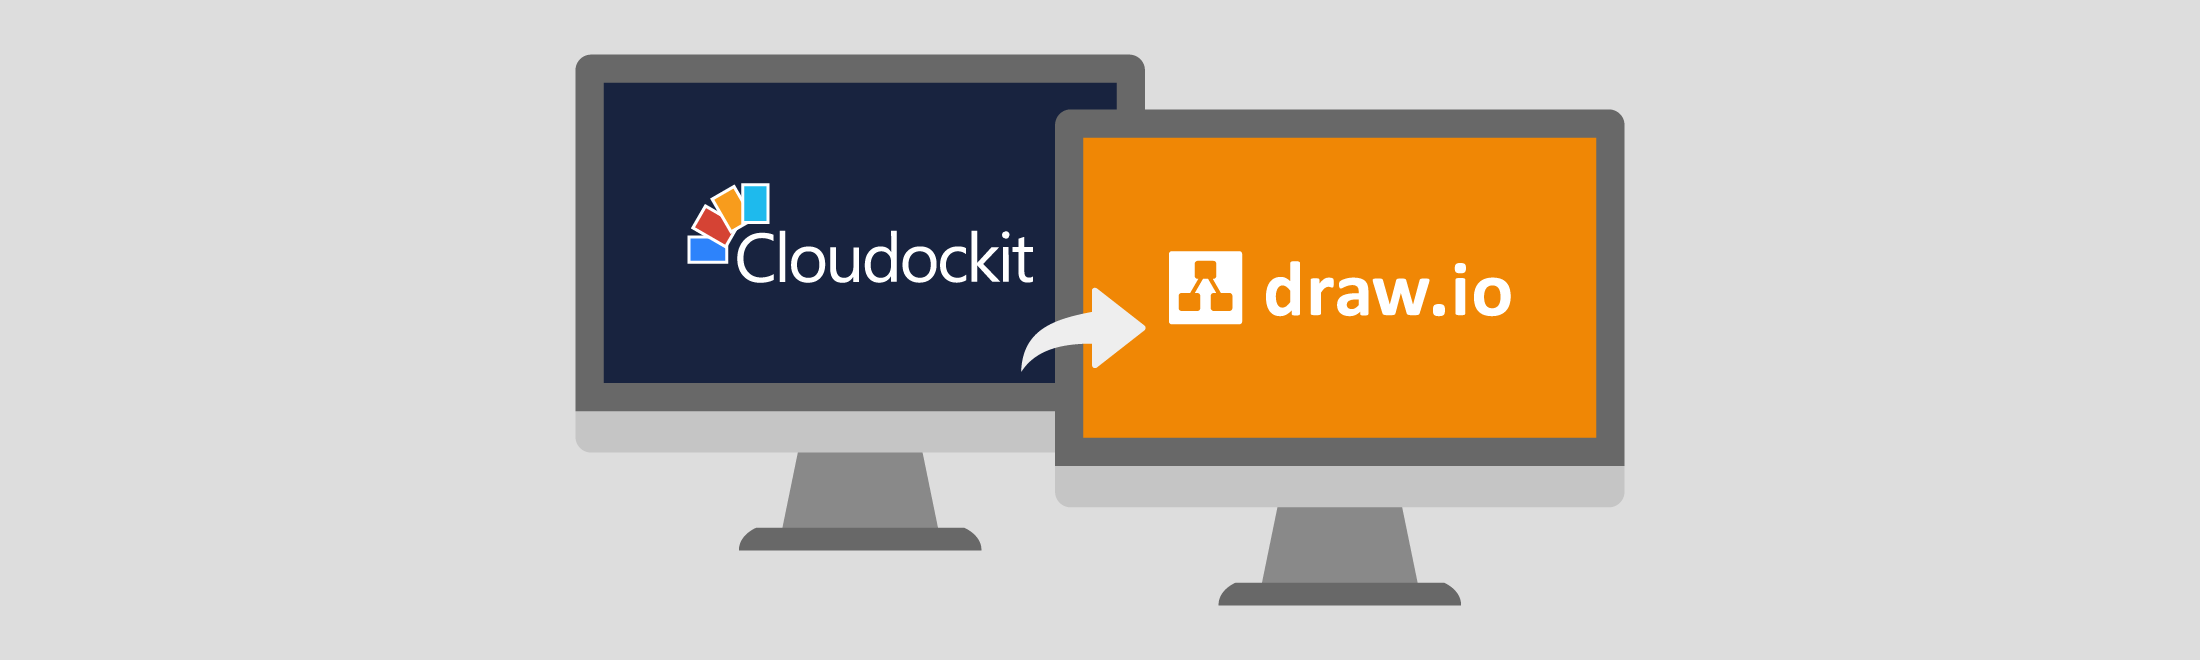 Export from Cloudockit to draw.io